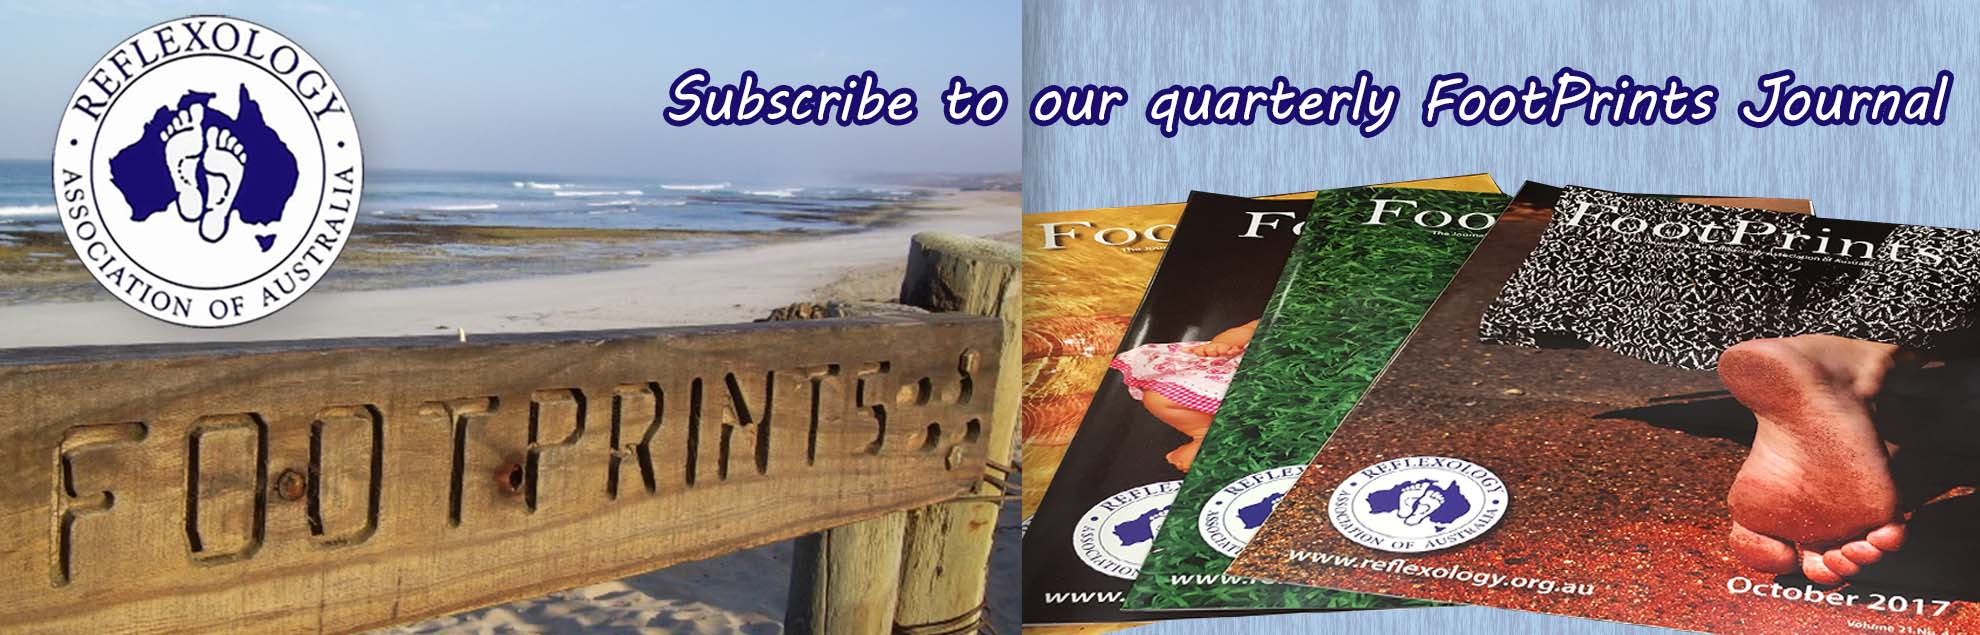 subscribe to refelexology Footprints magazine